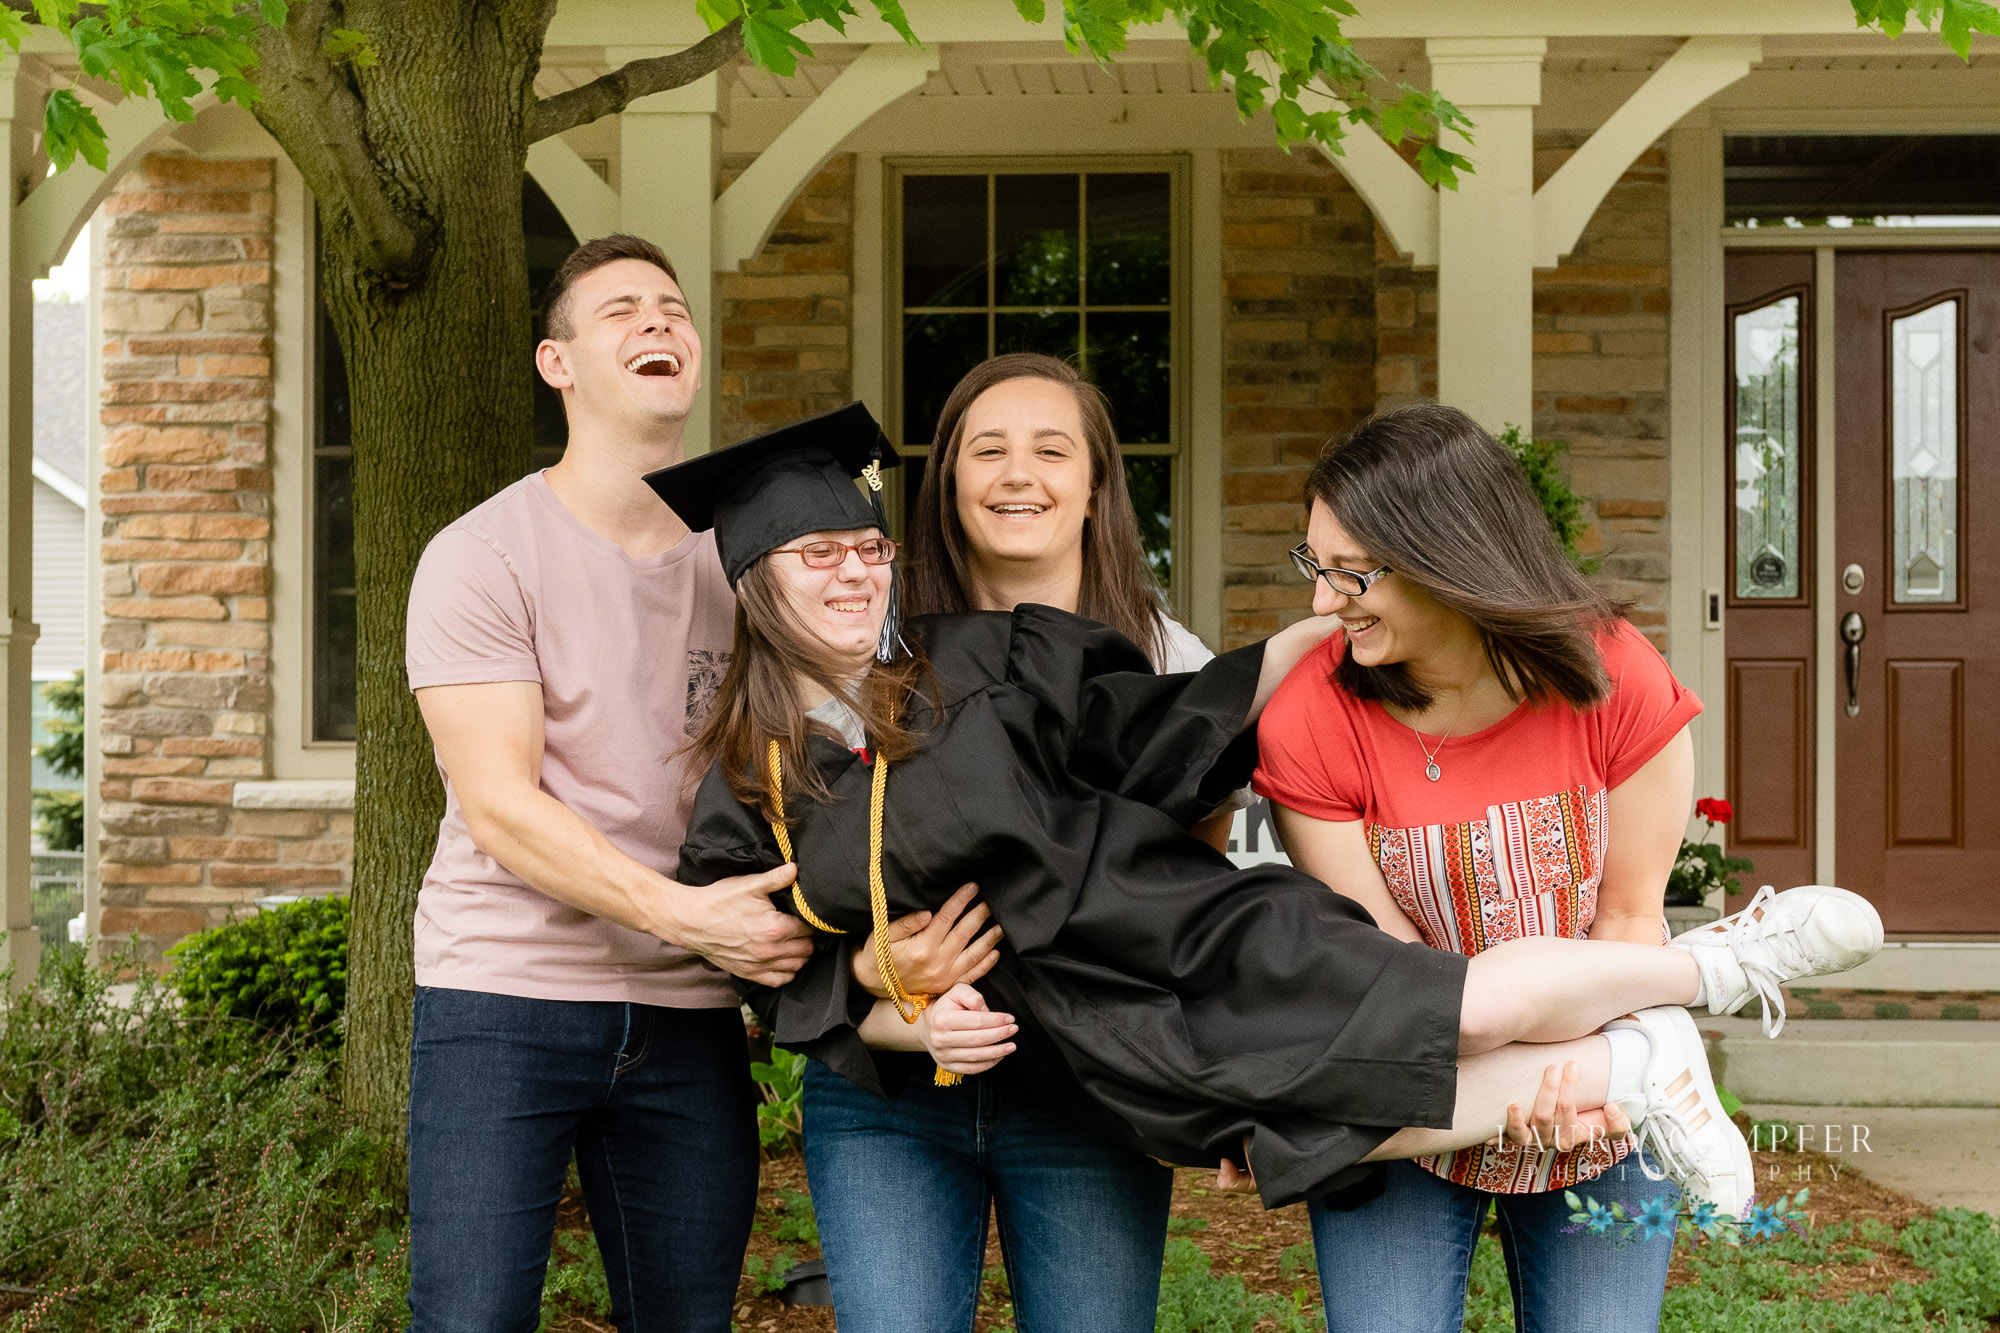 kane county graduation cap and gown photographer